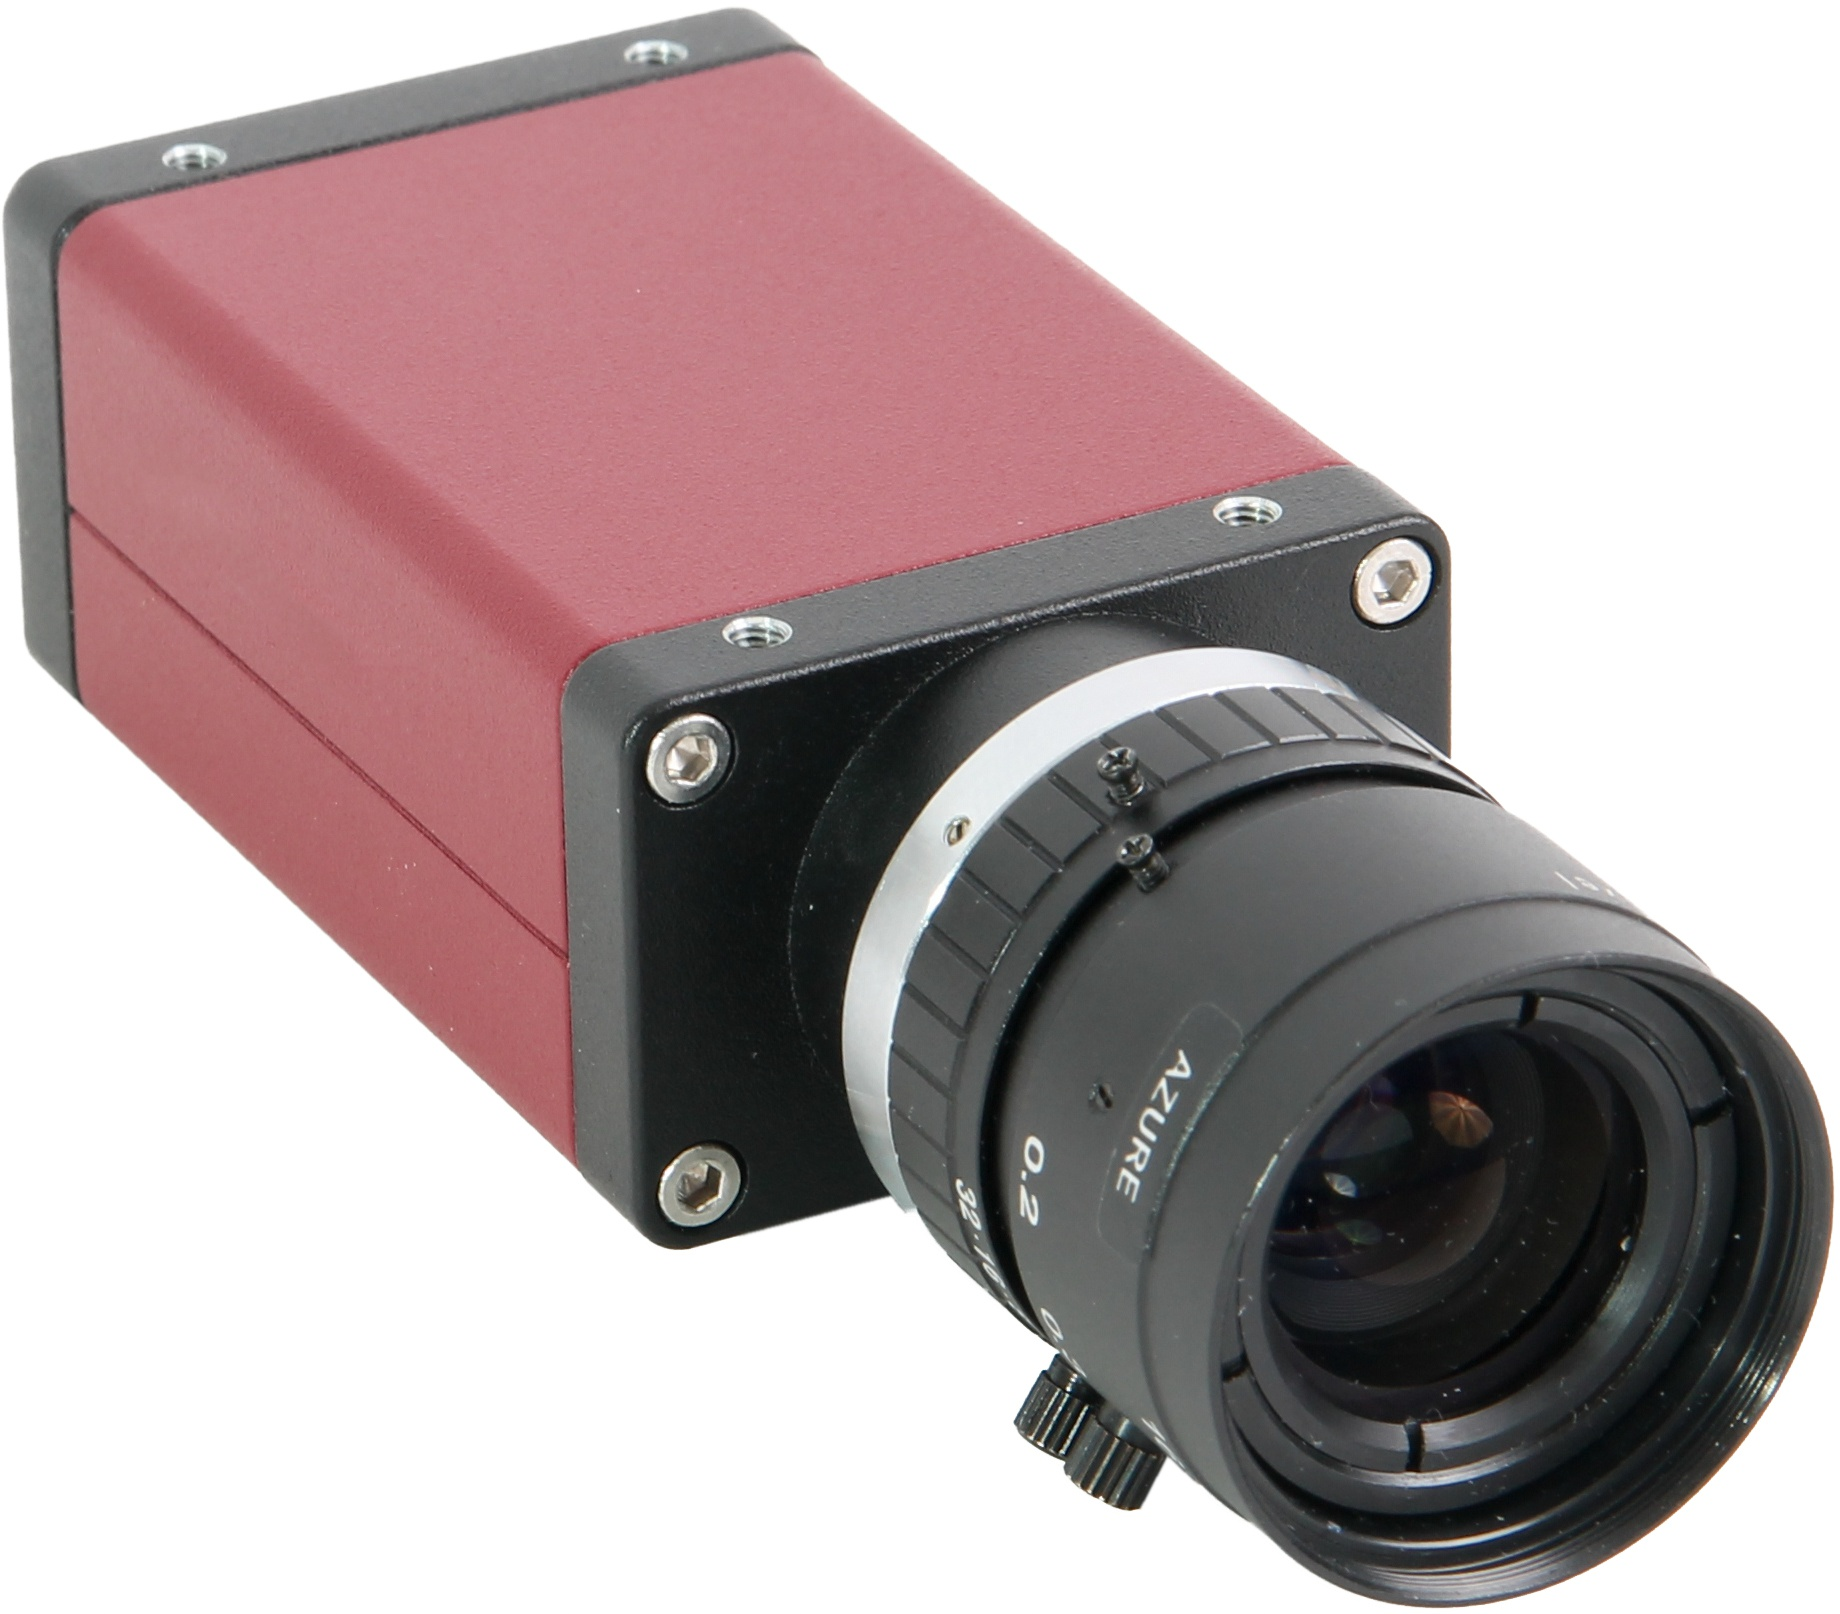 DS-CAM-88c / DS-CAM-120c Gigabit-Ethernet Camera - PDF